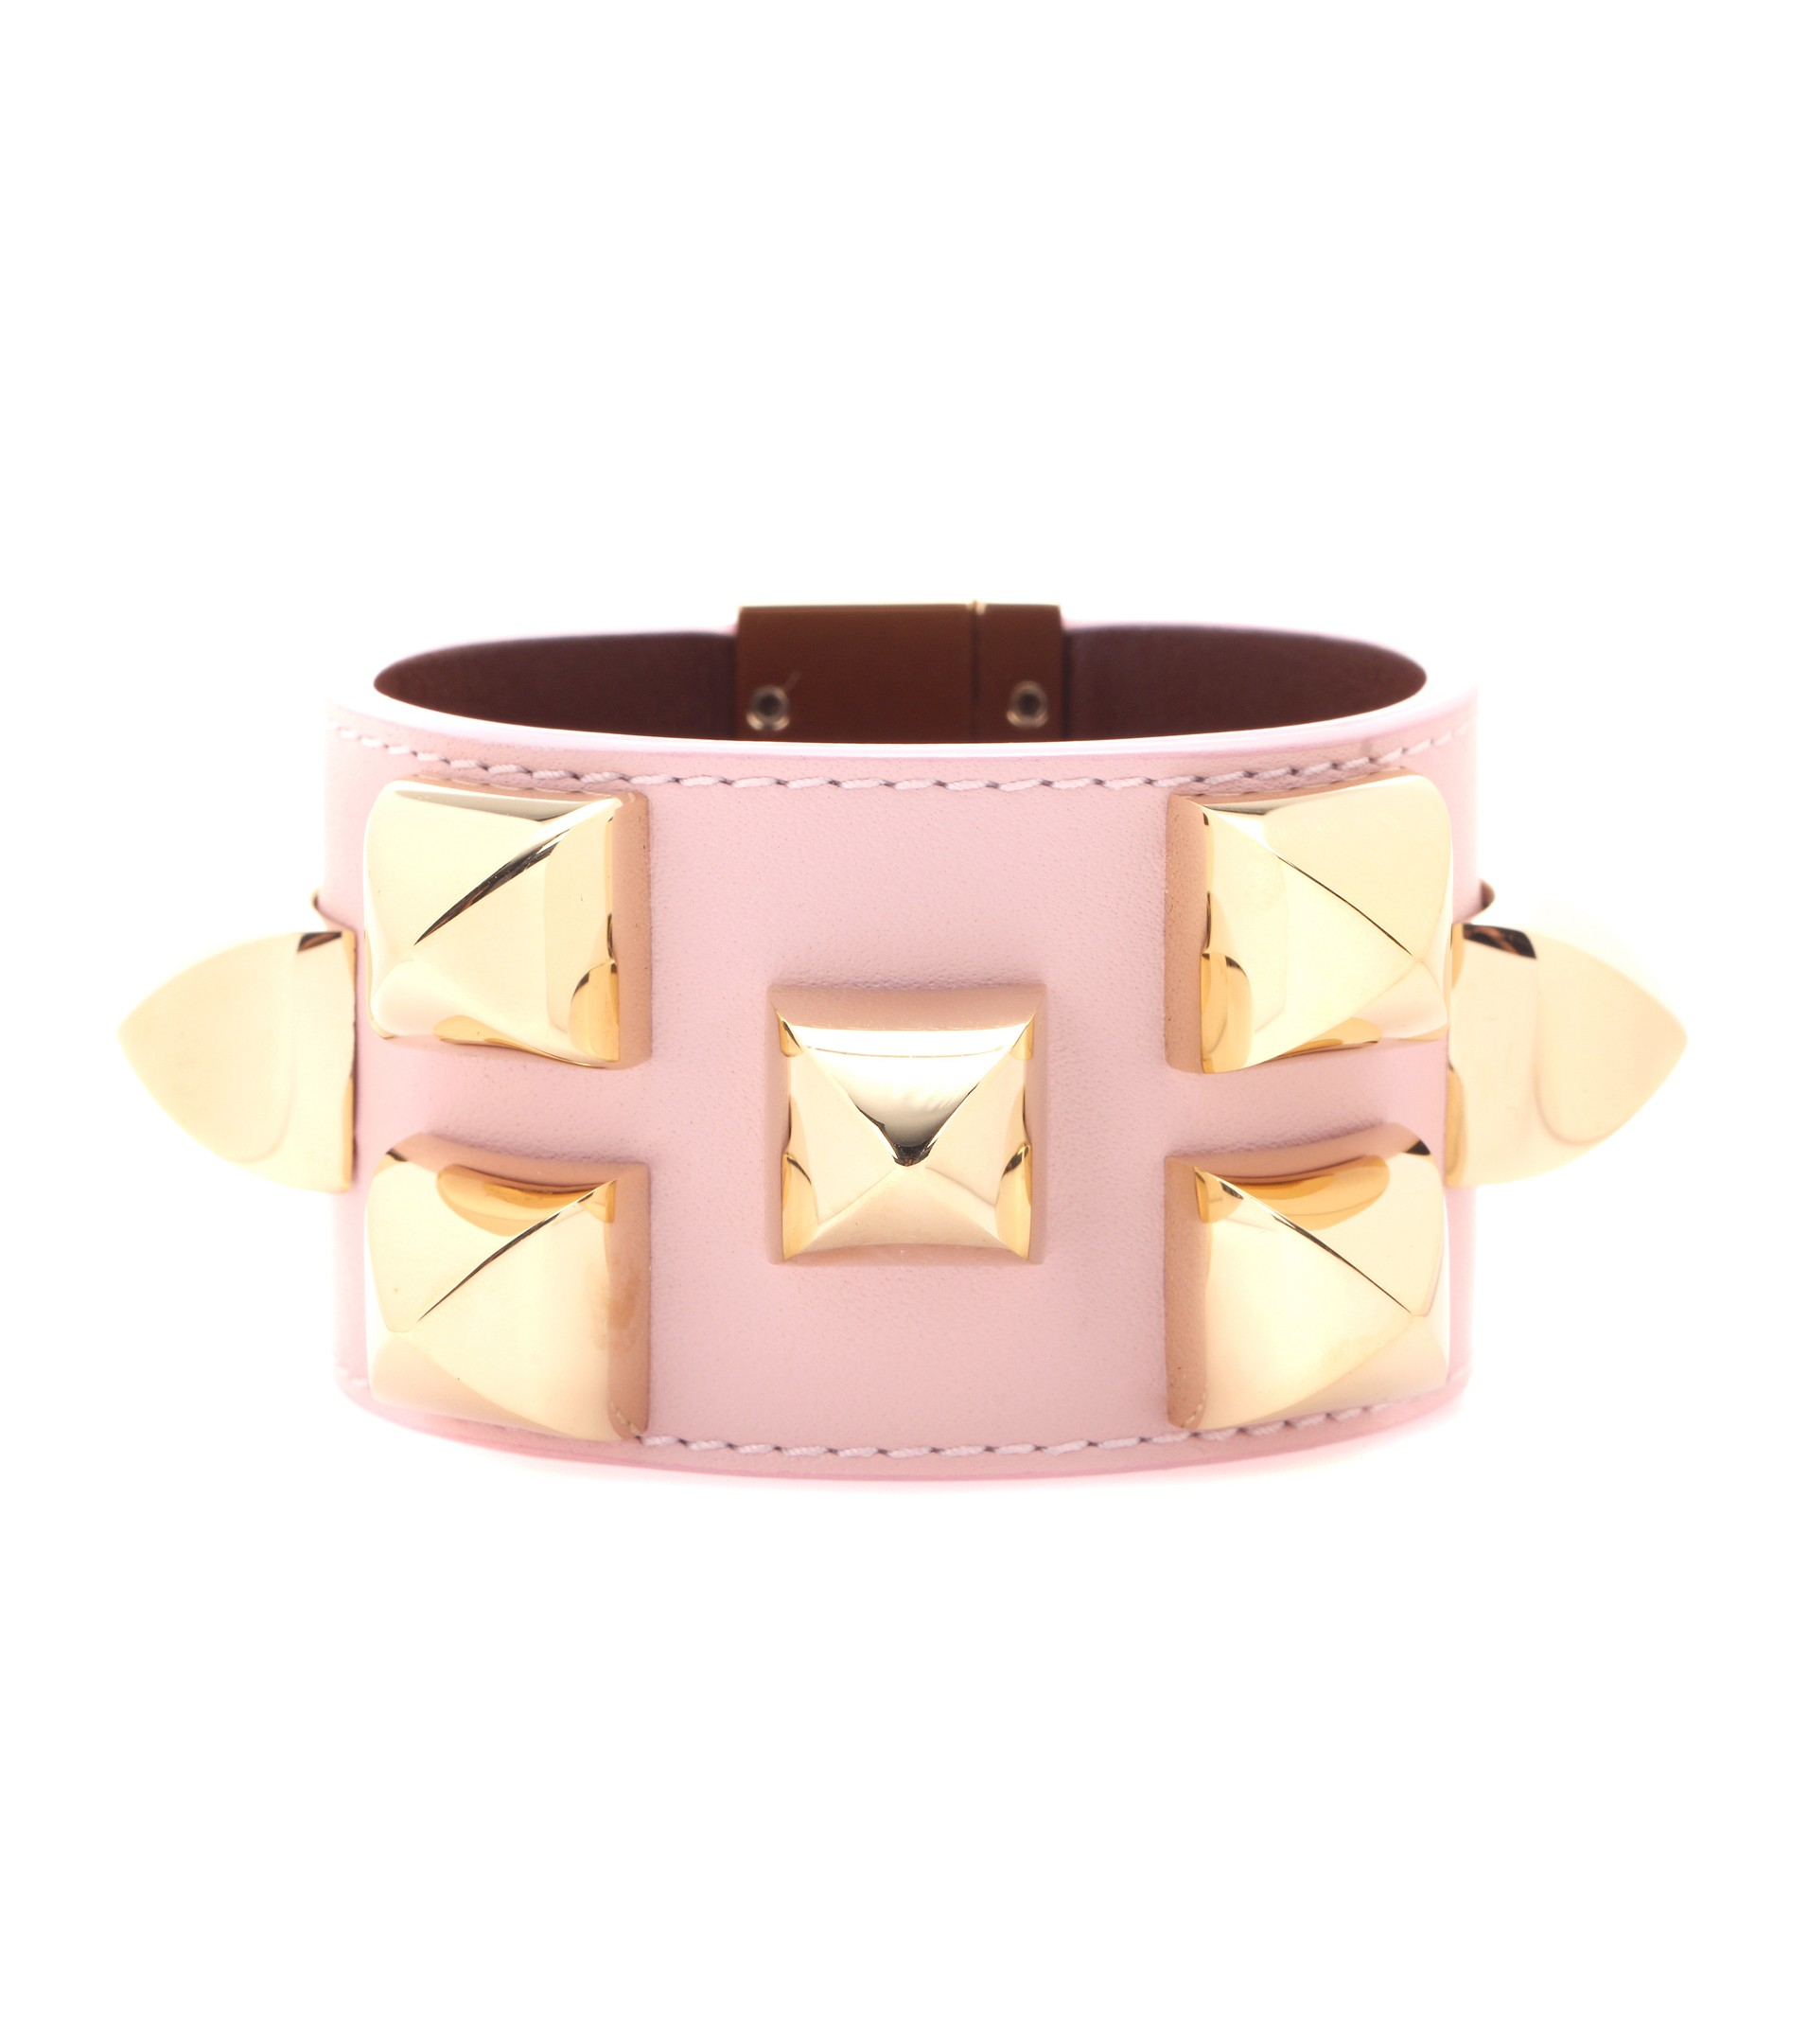 Givenchy Studded Leather Bracelet in Pink - Lyst e92c4be004